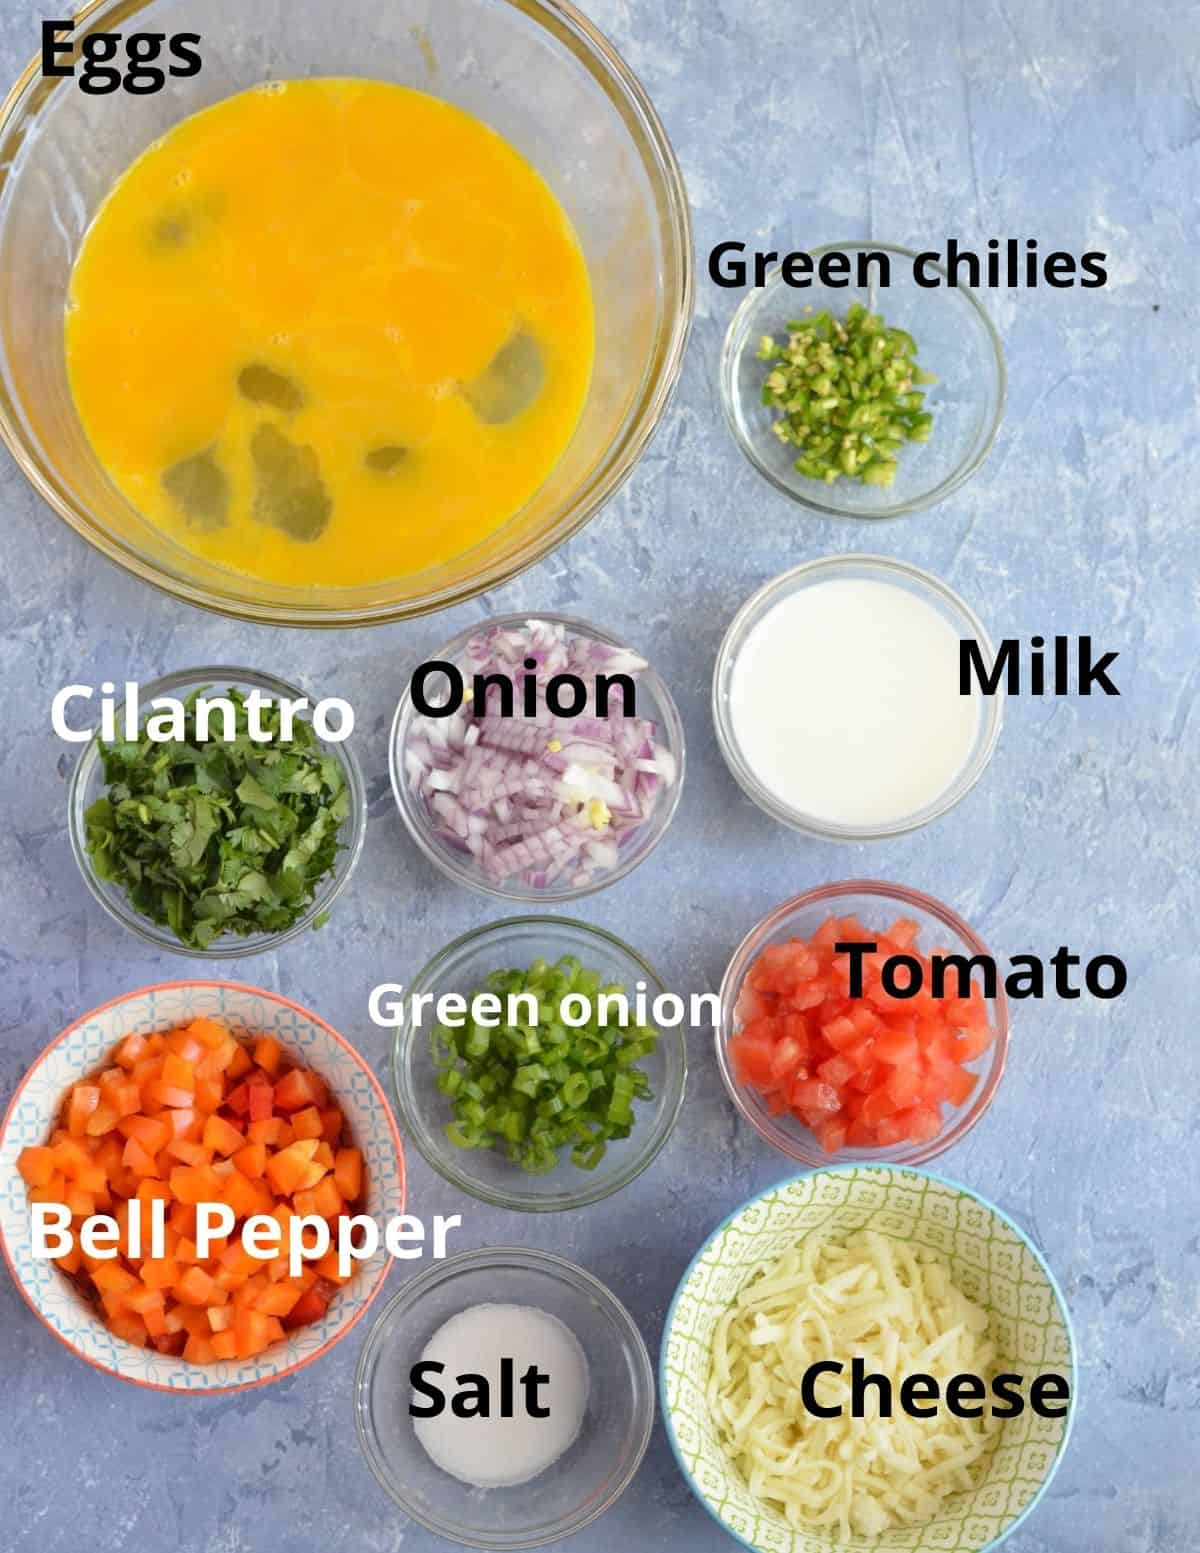 ingredients to make oven baked eggs for a crowd.